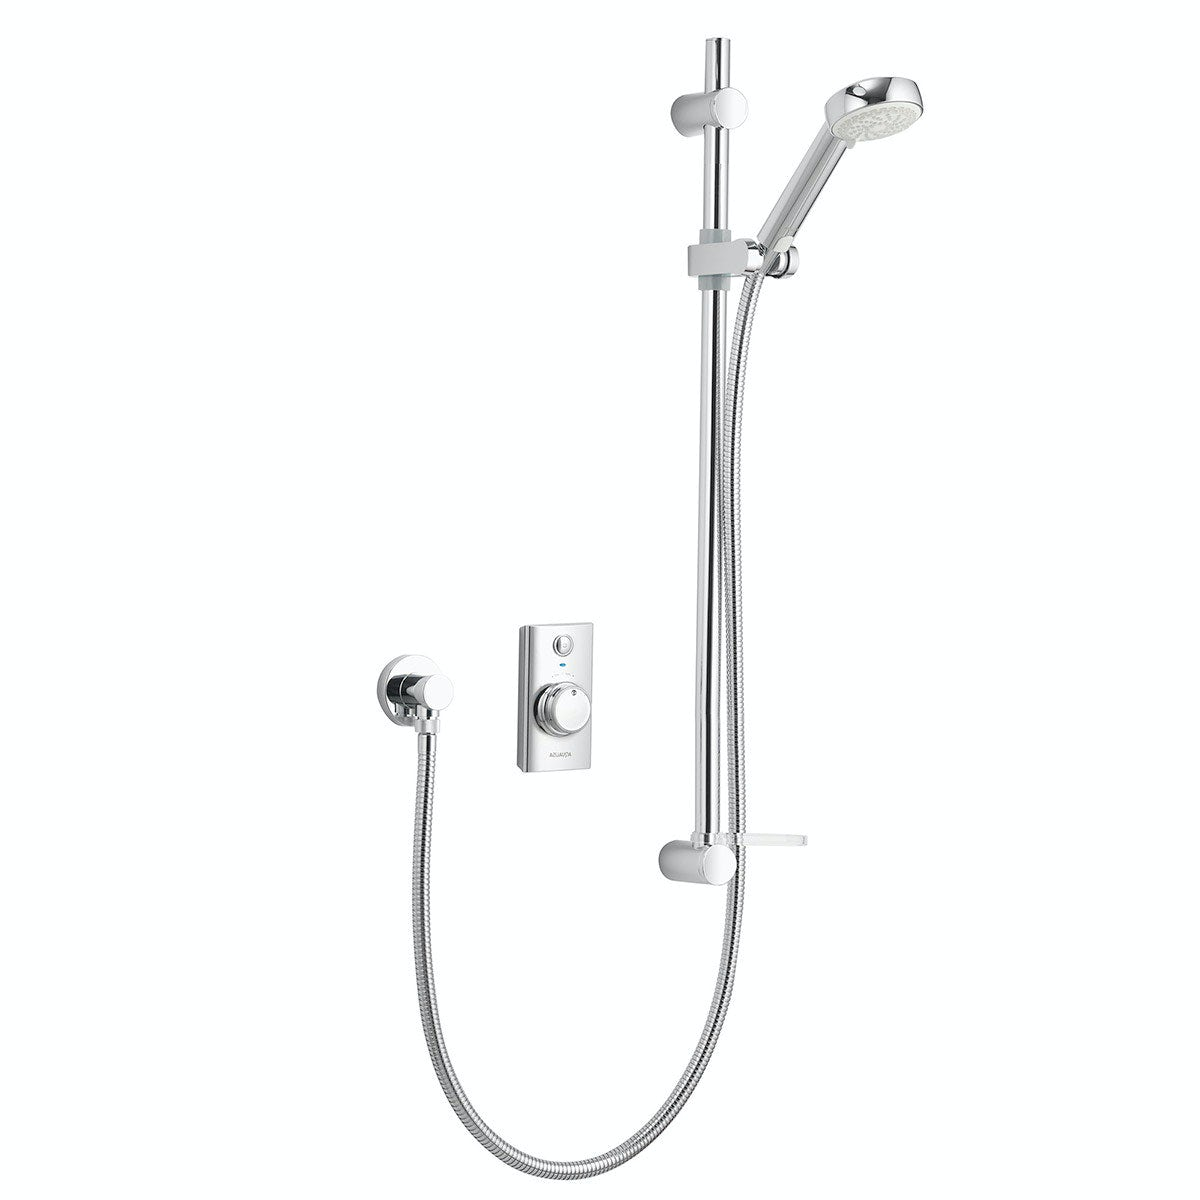 Aqualisa visage concealed digital shower pumped